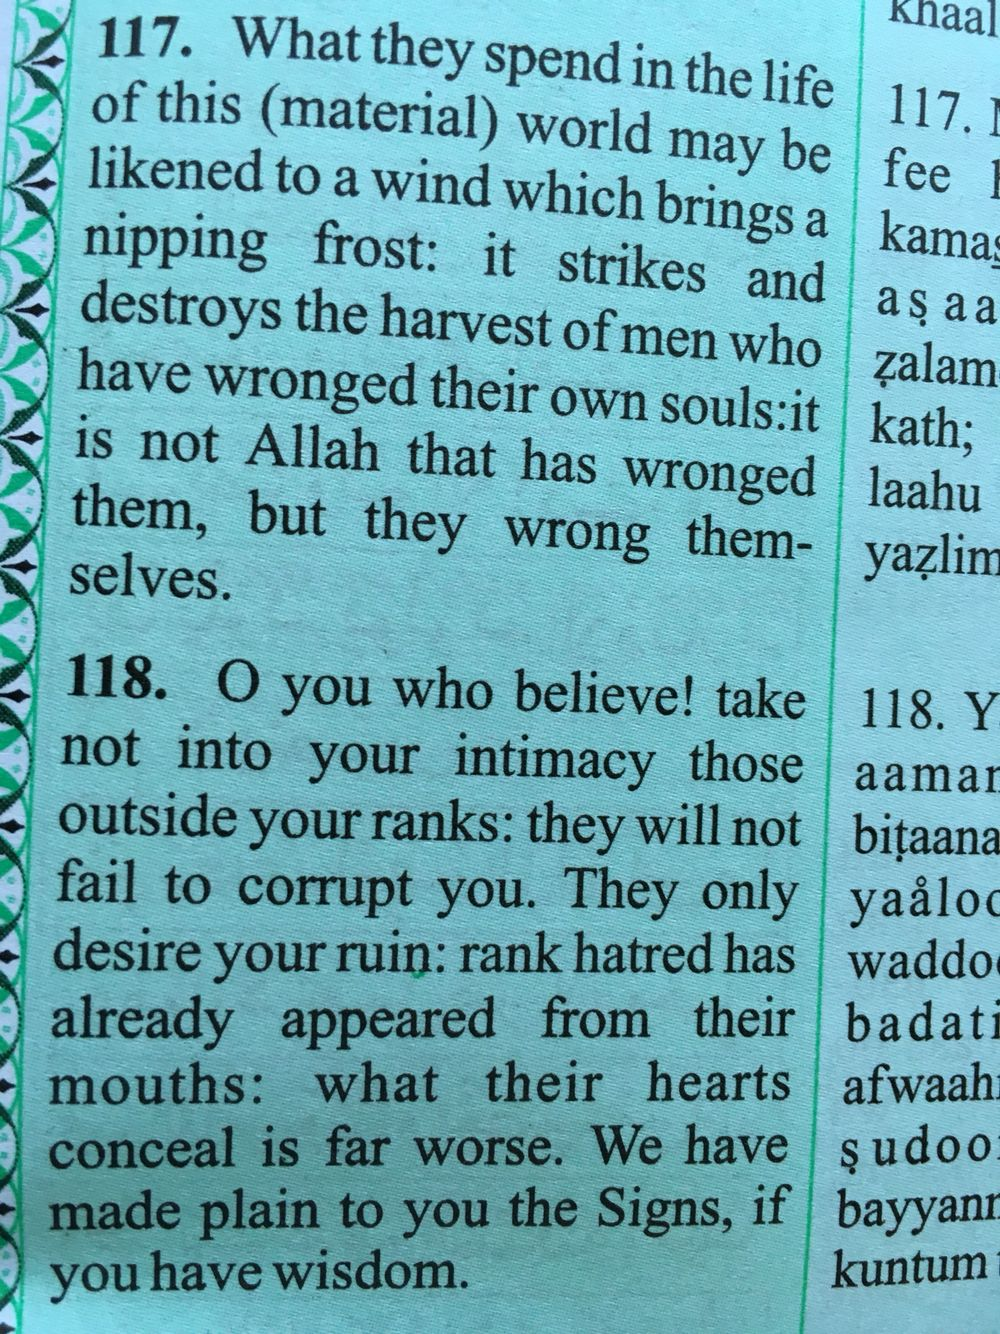 Surah Al-Imran 3: 117 & 118  - The Noble Qur'an   Beautiful verse from the Quran. So true Mashallah  The Quran is a beautiful book of guidance and truth.